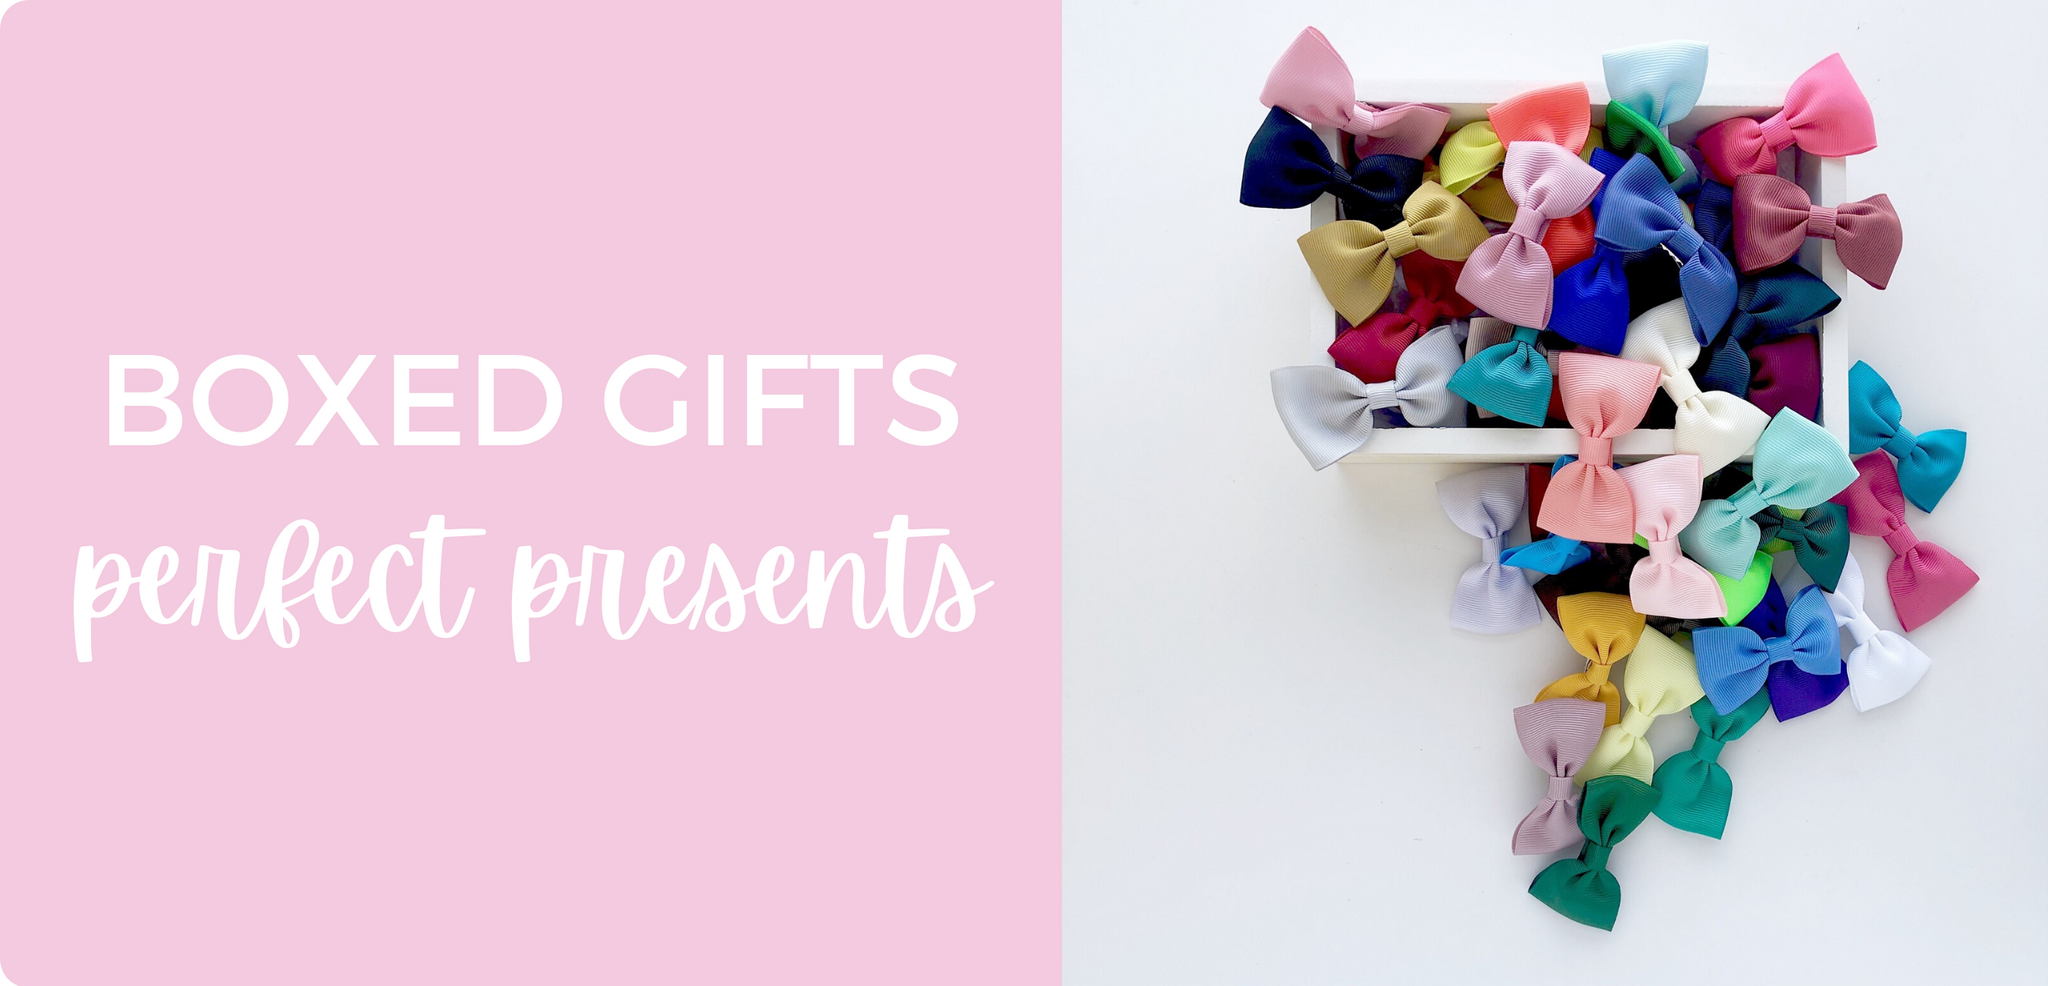 Boxed gifts - perfect presents - bows and clips in Australia with AfterPay